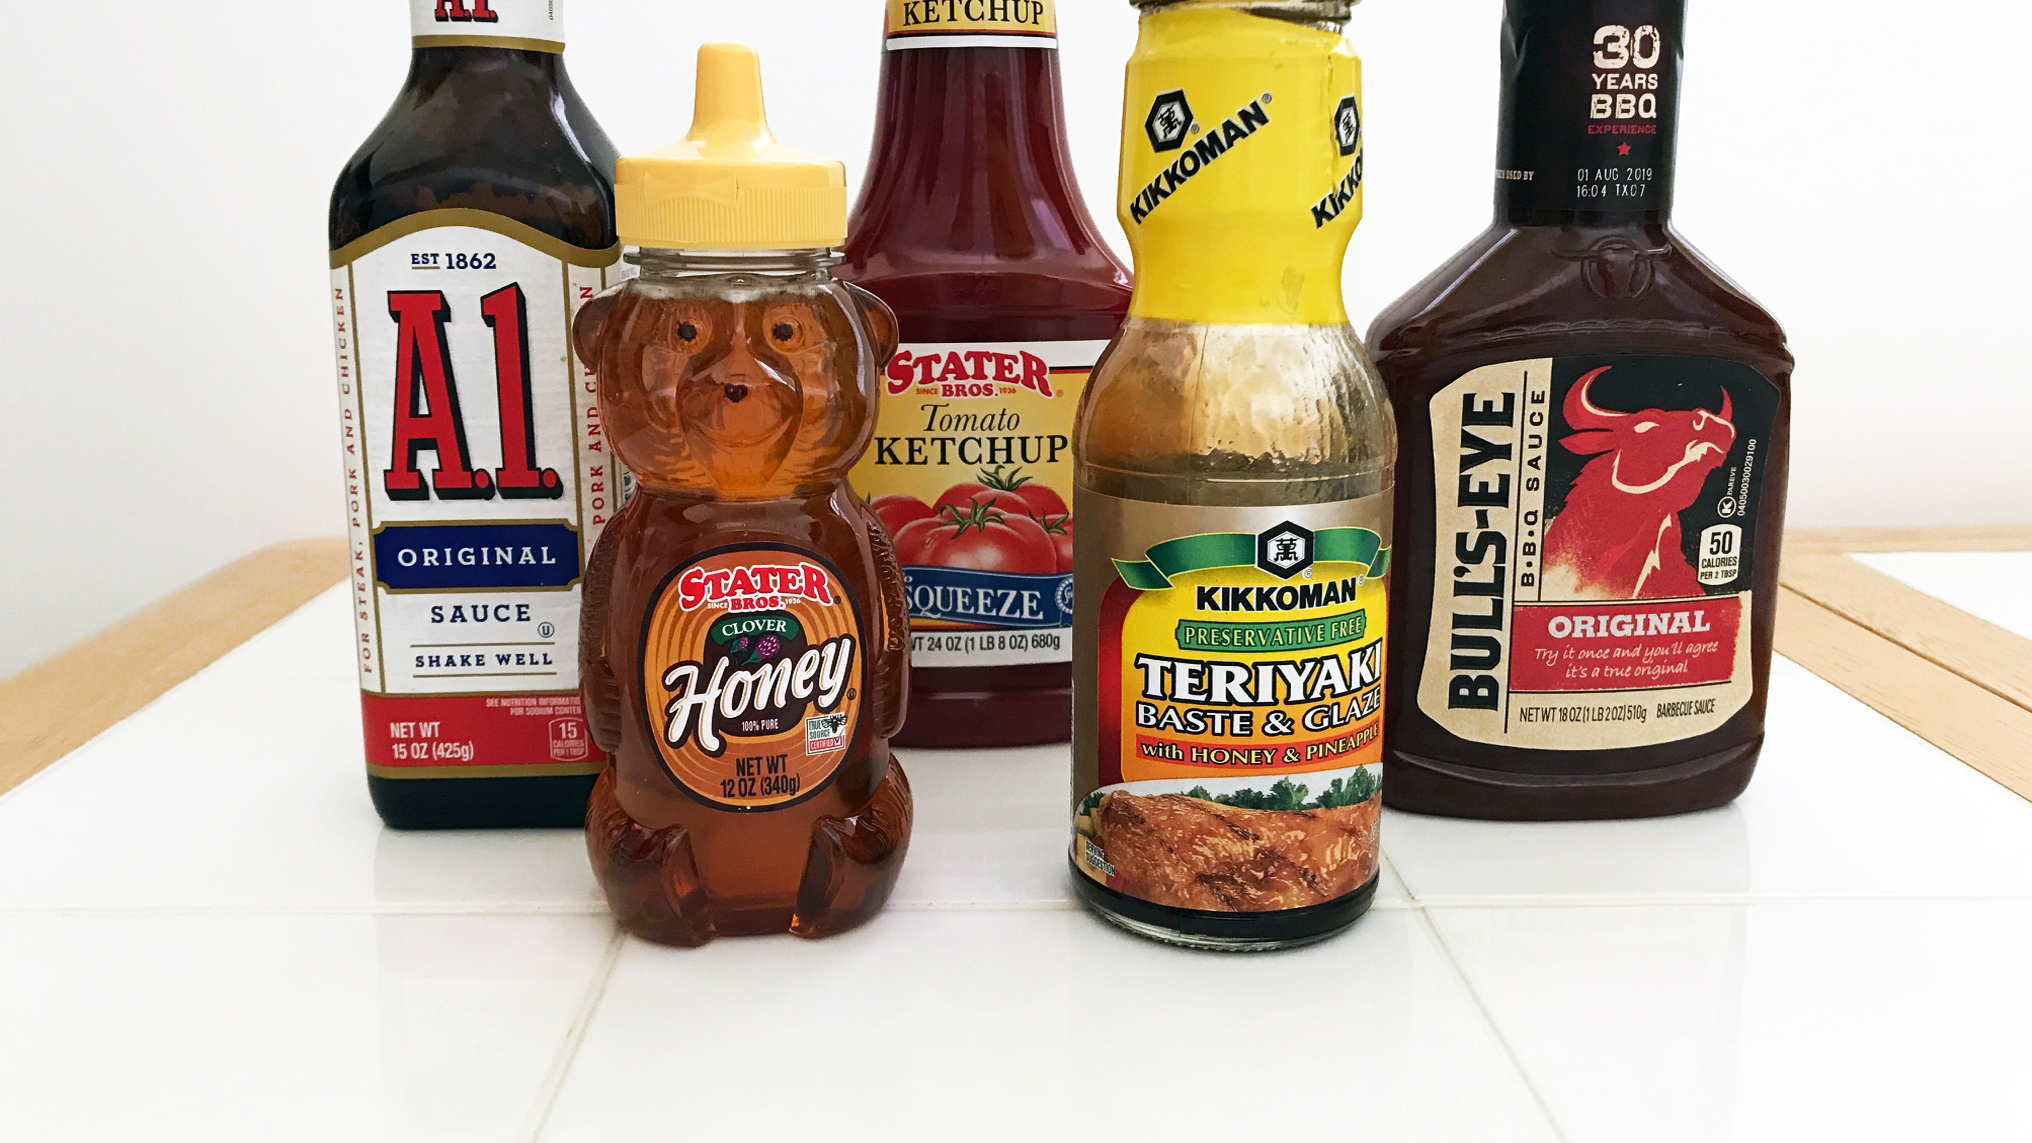 Various condiments that can be used to help flavor food; A1, Honey, BBQ sauce, Catsup, or Teriyaki sauce